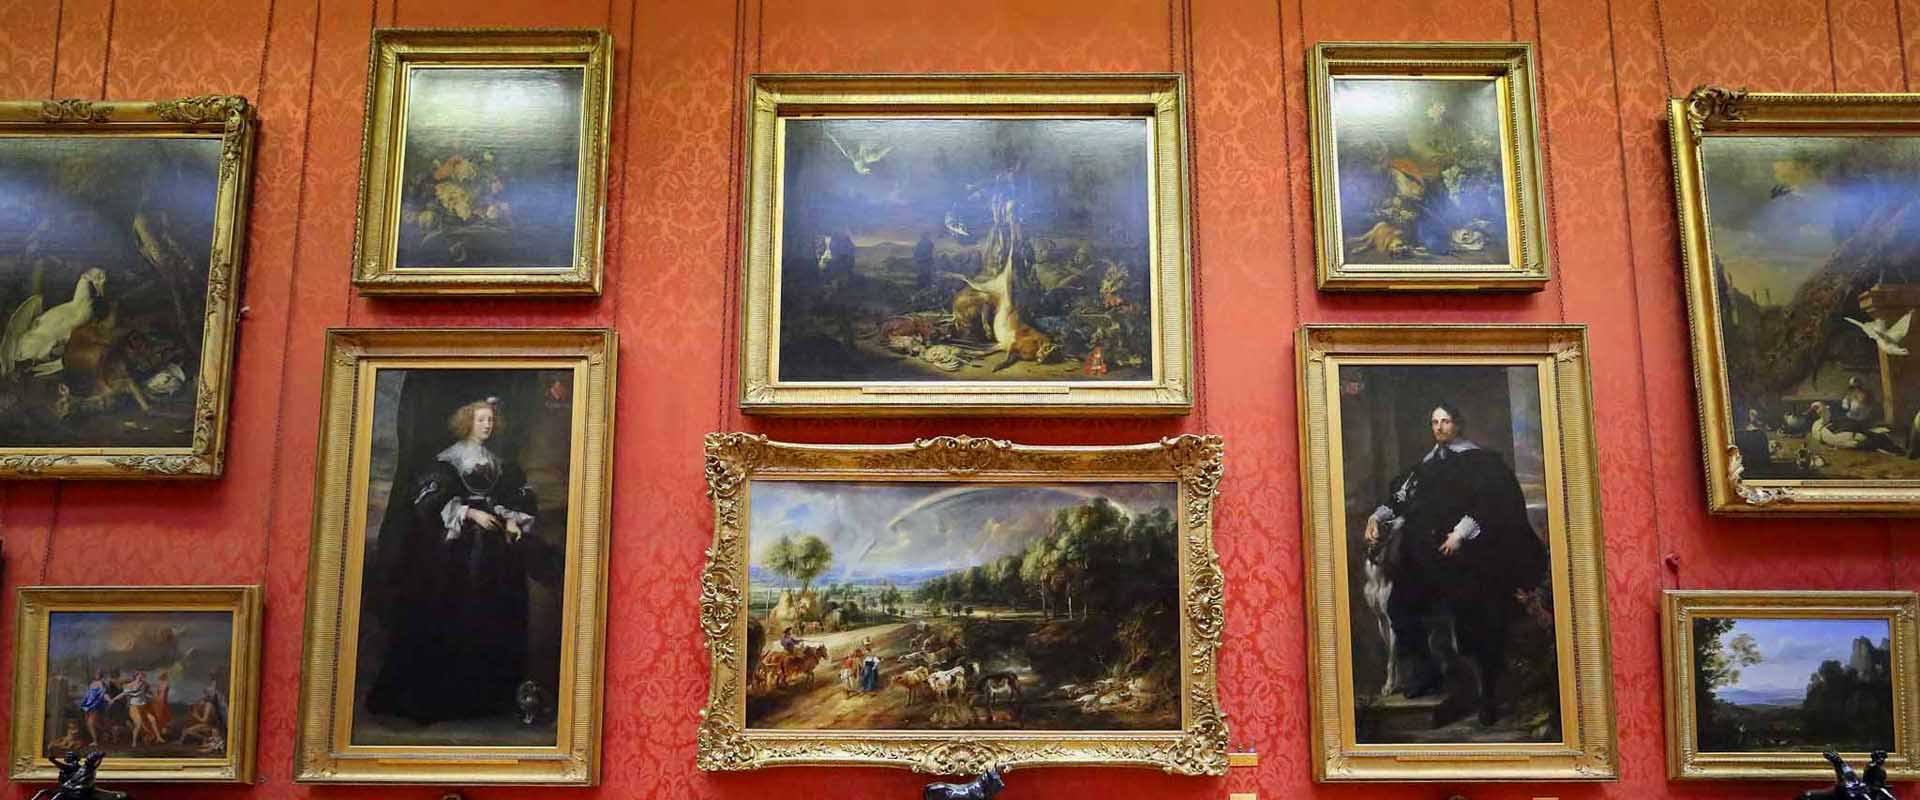 wallace collection, artscapes